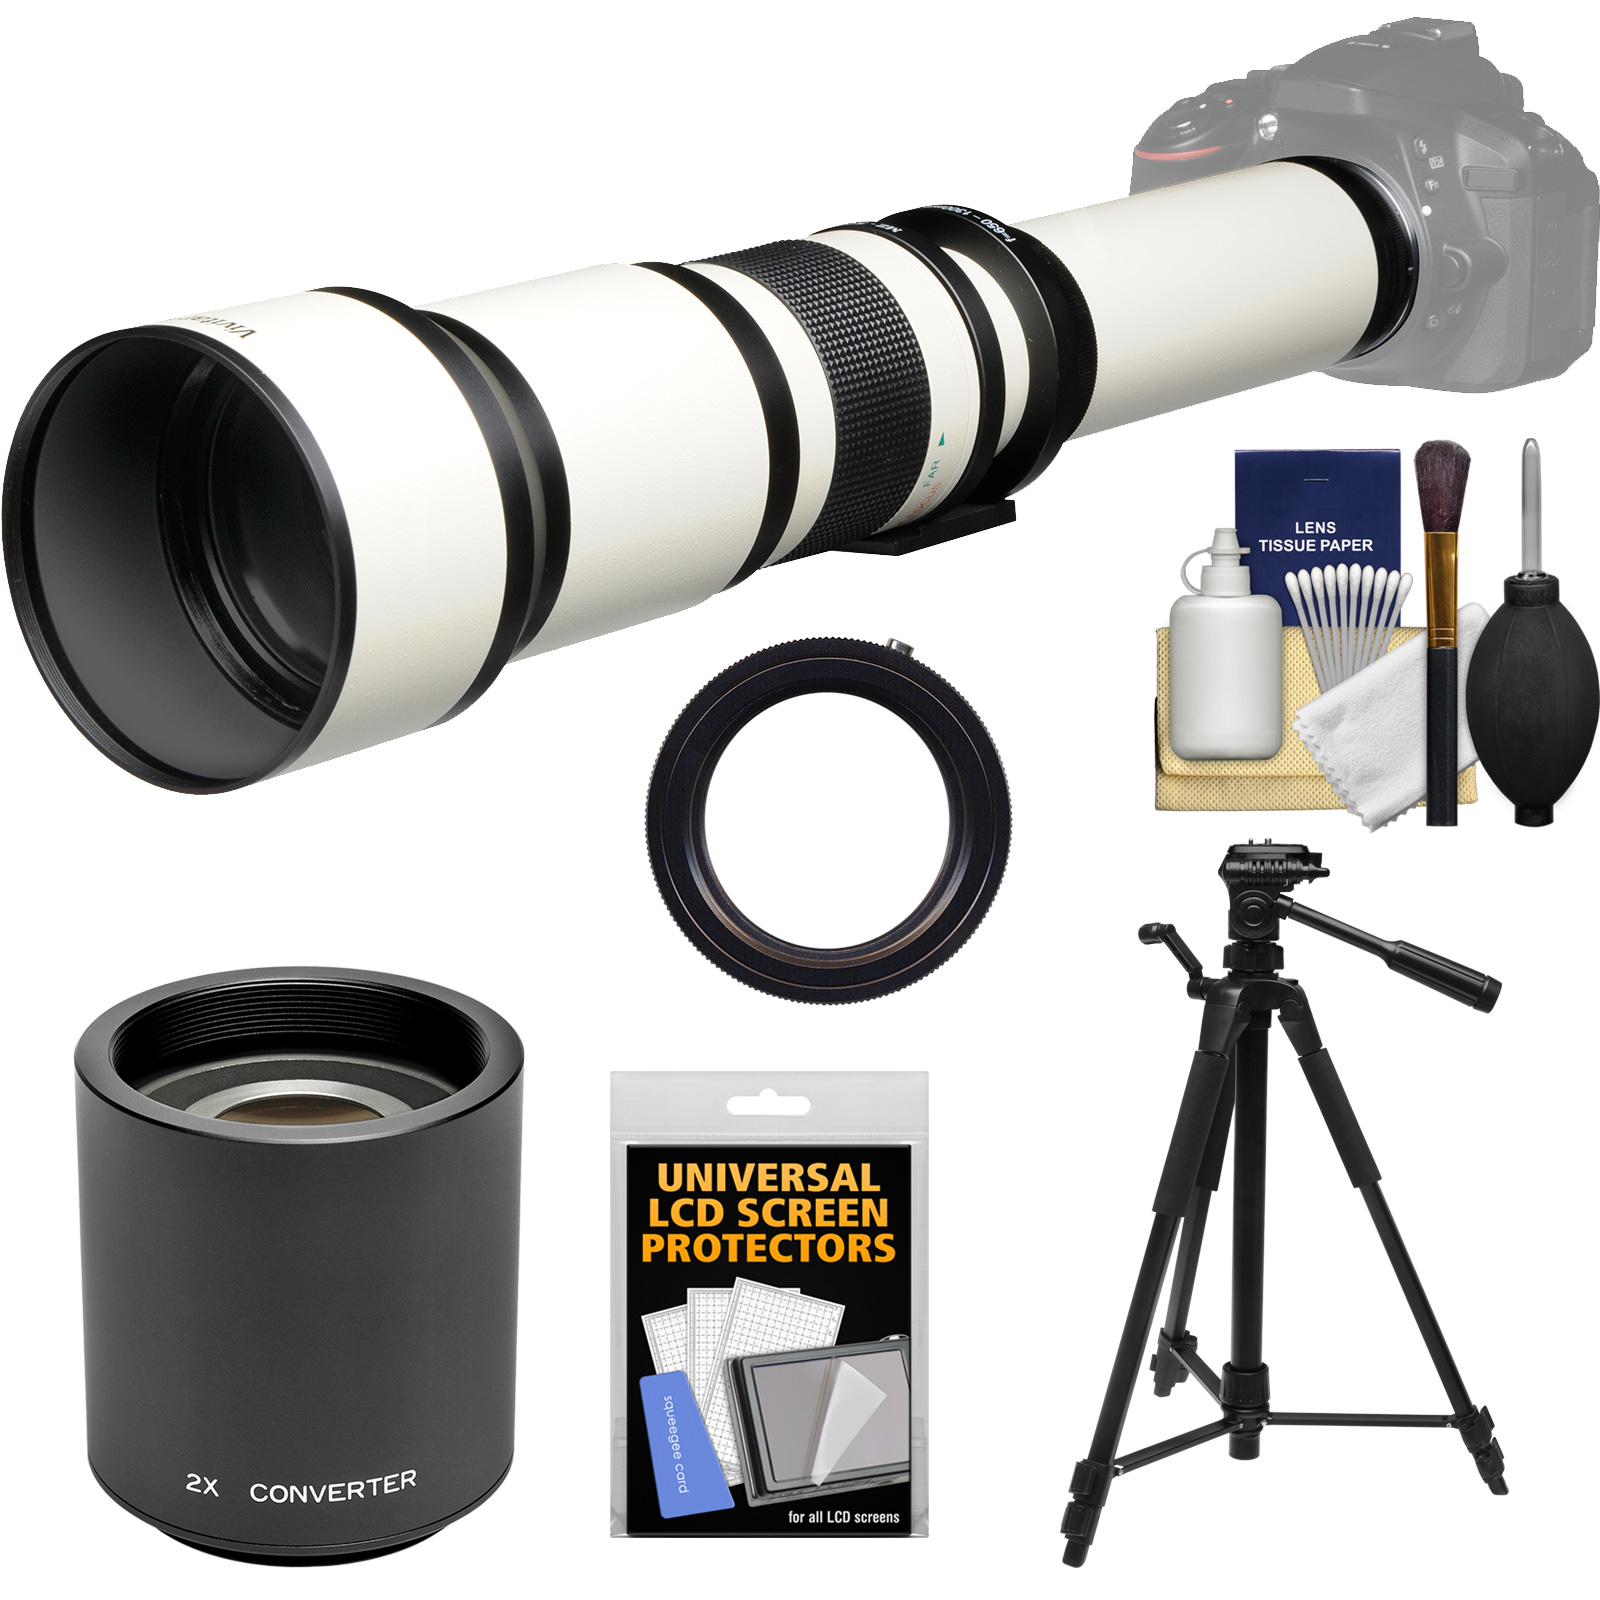 Vivitar 650-1300mm f/8-16 Telephoto Lens (White) (T Mount) with 2x Teleconverter (=2600mm) + Tripod + Kit for Canon EOS 6D, 70D, 7D, 5DS, 5D Mark II III, Rebel T5, T5i, T6i, T6s, SL1 Camera